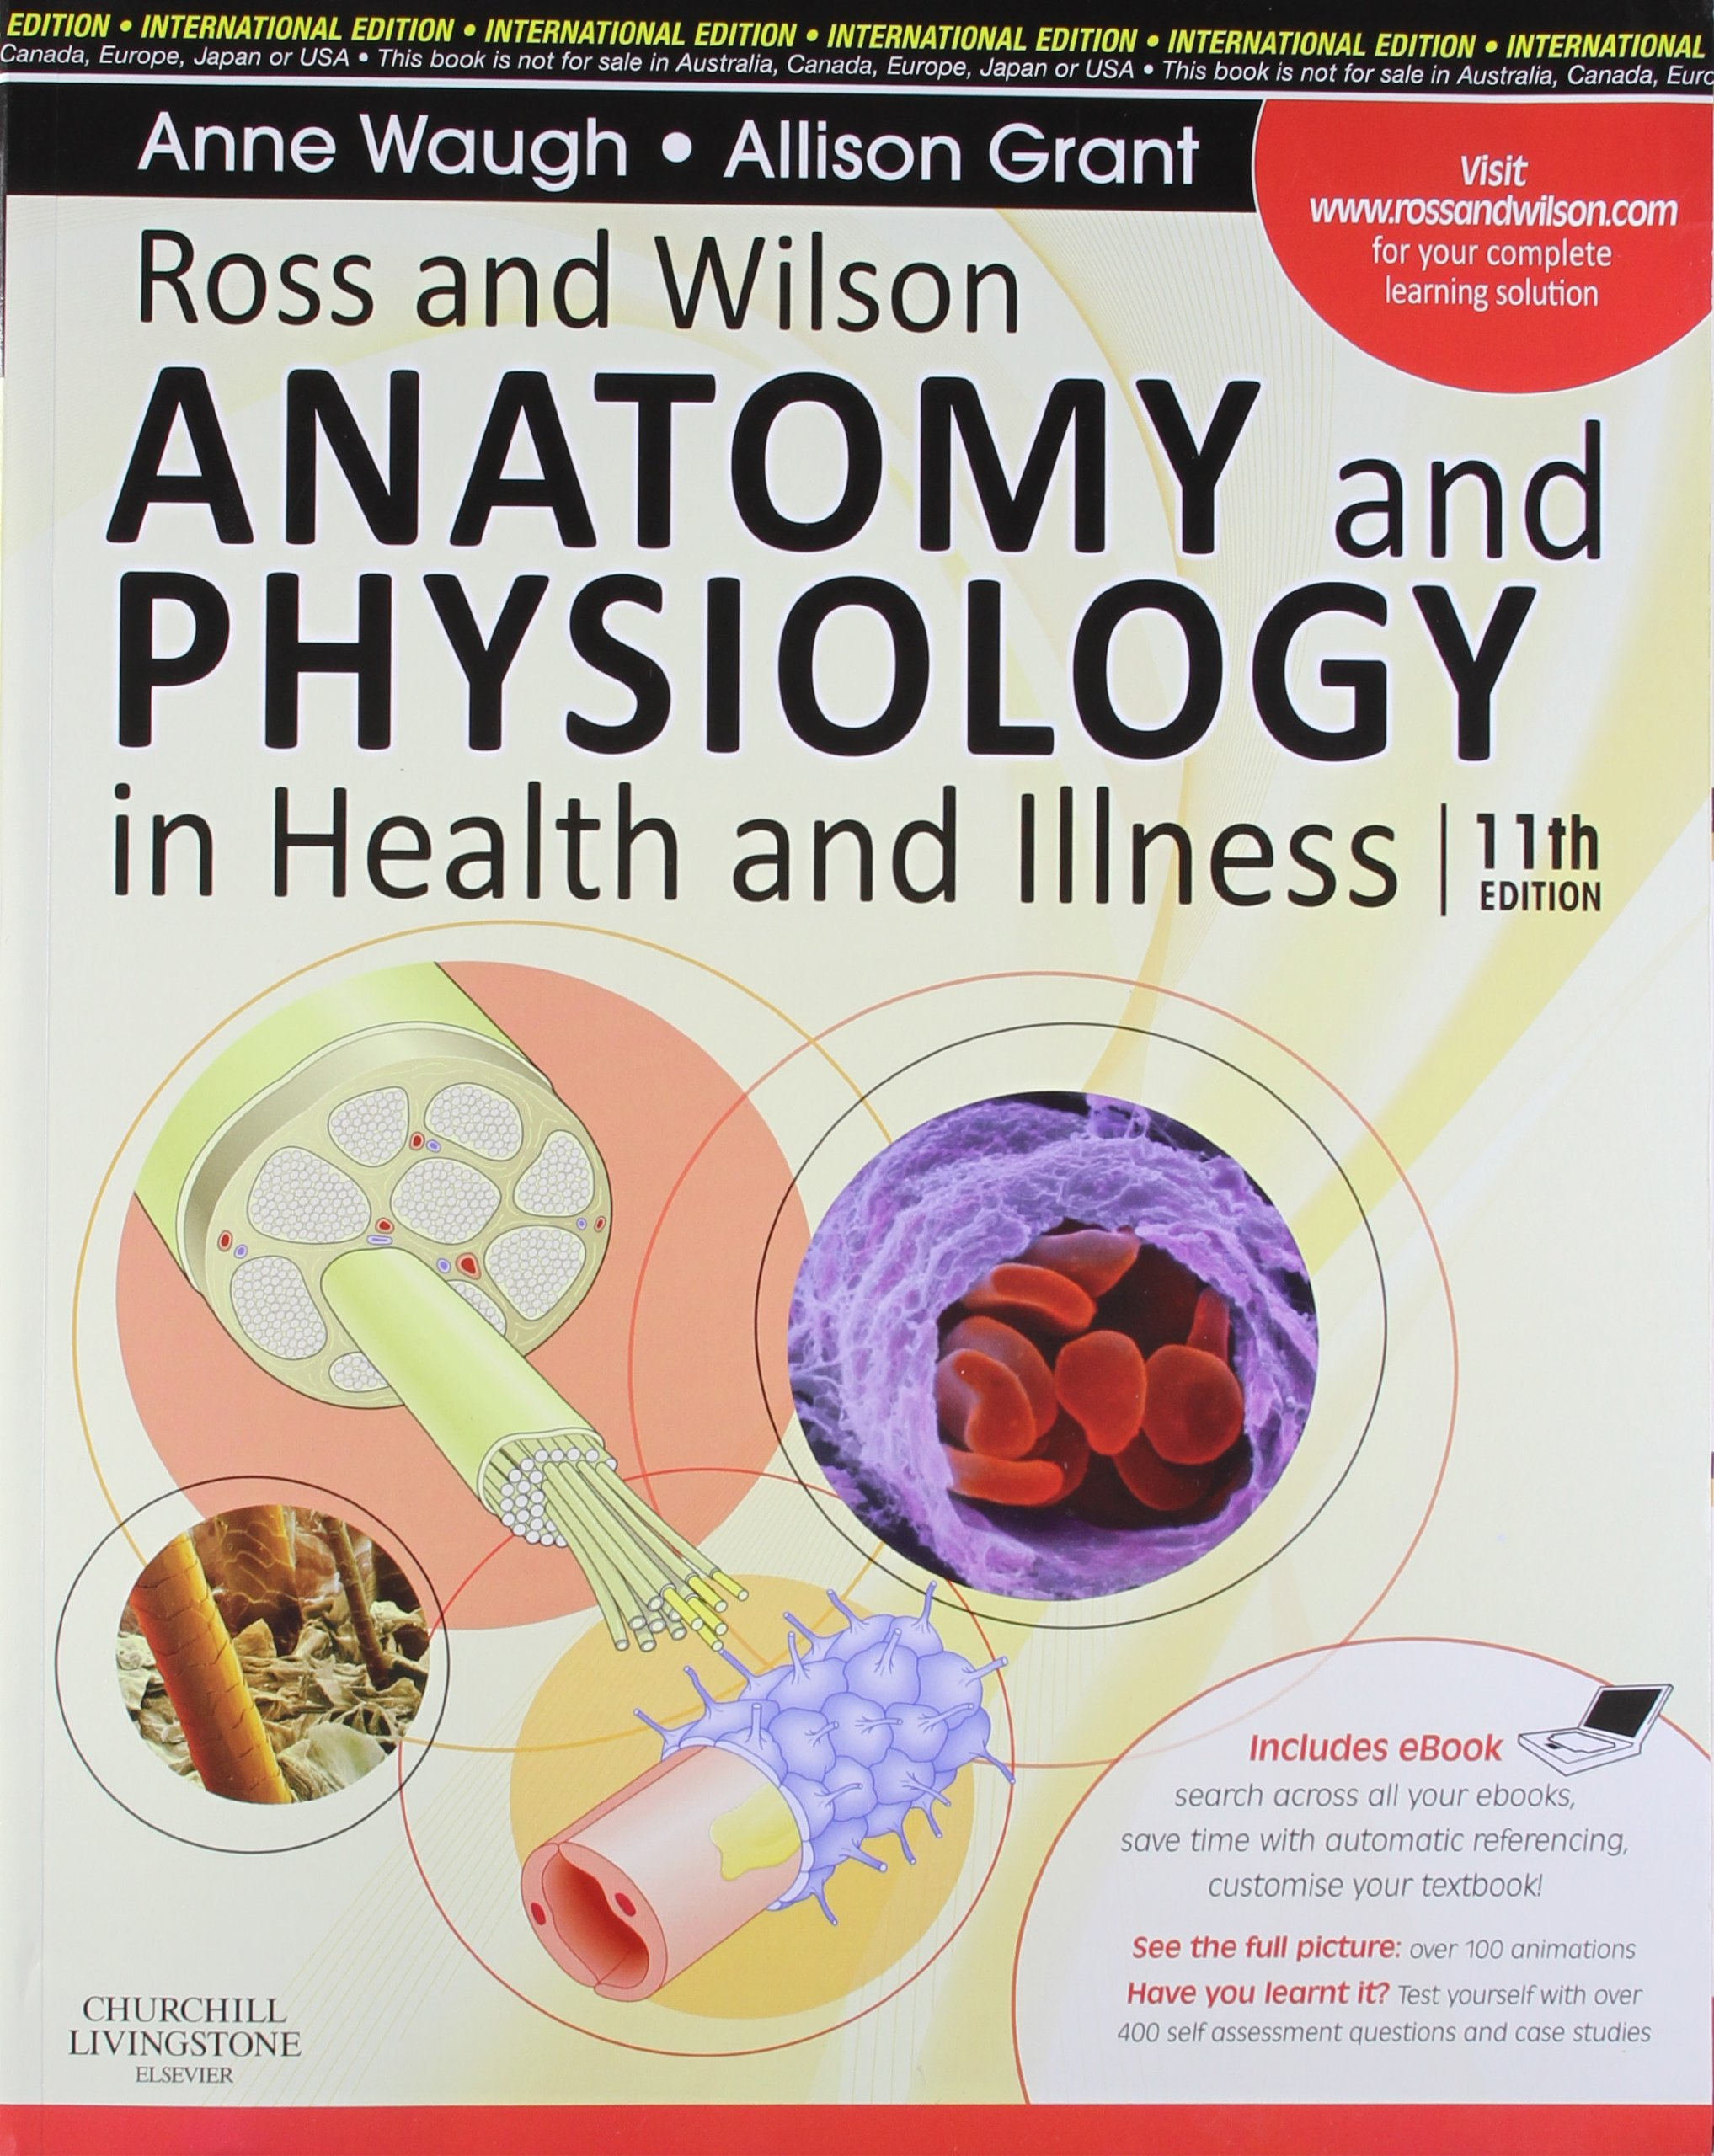 Buy ross and wilson anatomy and physiology in health and illness buy ross and wilson anatomy and physiology in health and illness old edition book online at low prices in india ross and wilson anatomy and physiology fandeluxe Image collections